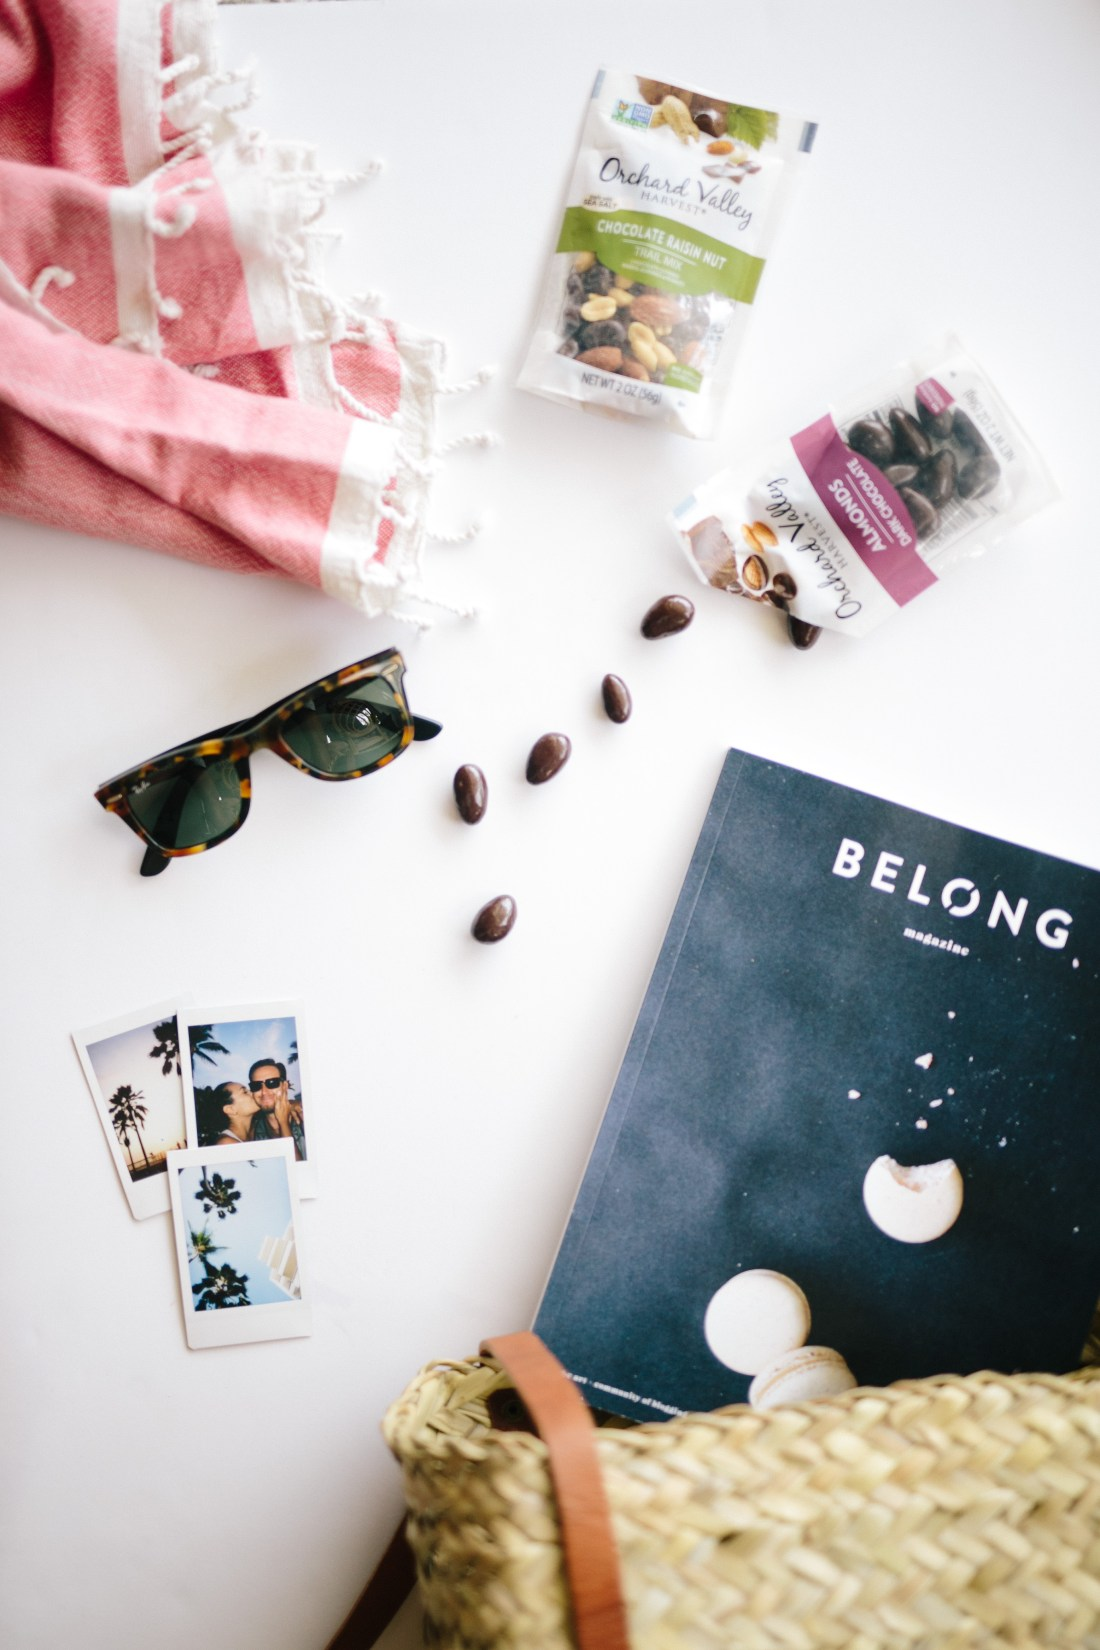 Orchard Valley Harvest Snacks | How To Stay Sane Even When You Sit & Stare at Screens All Day | Entrepreneurial Advice | elanaloo.com